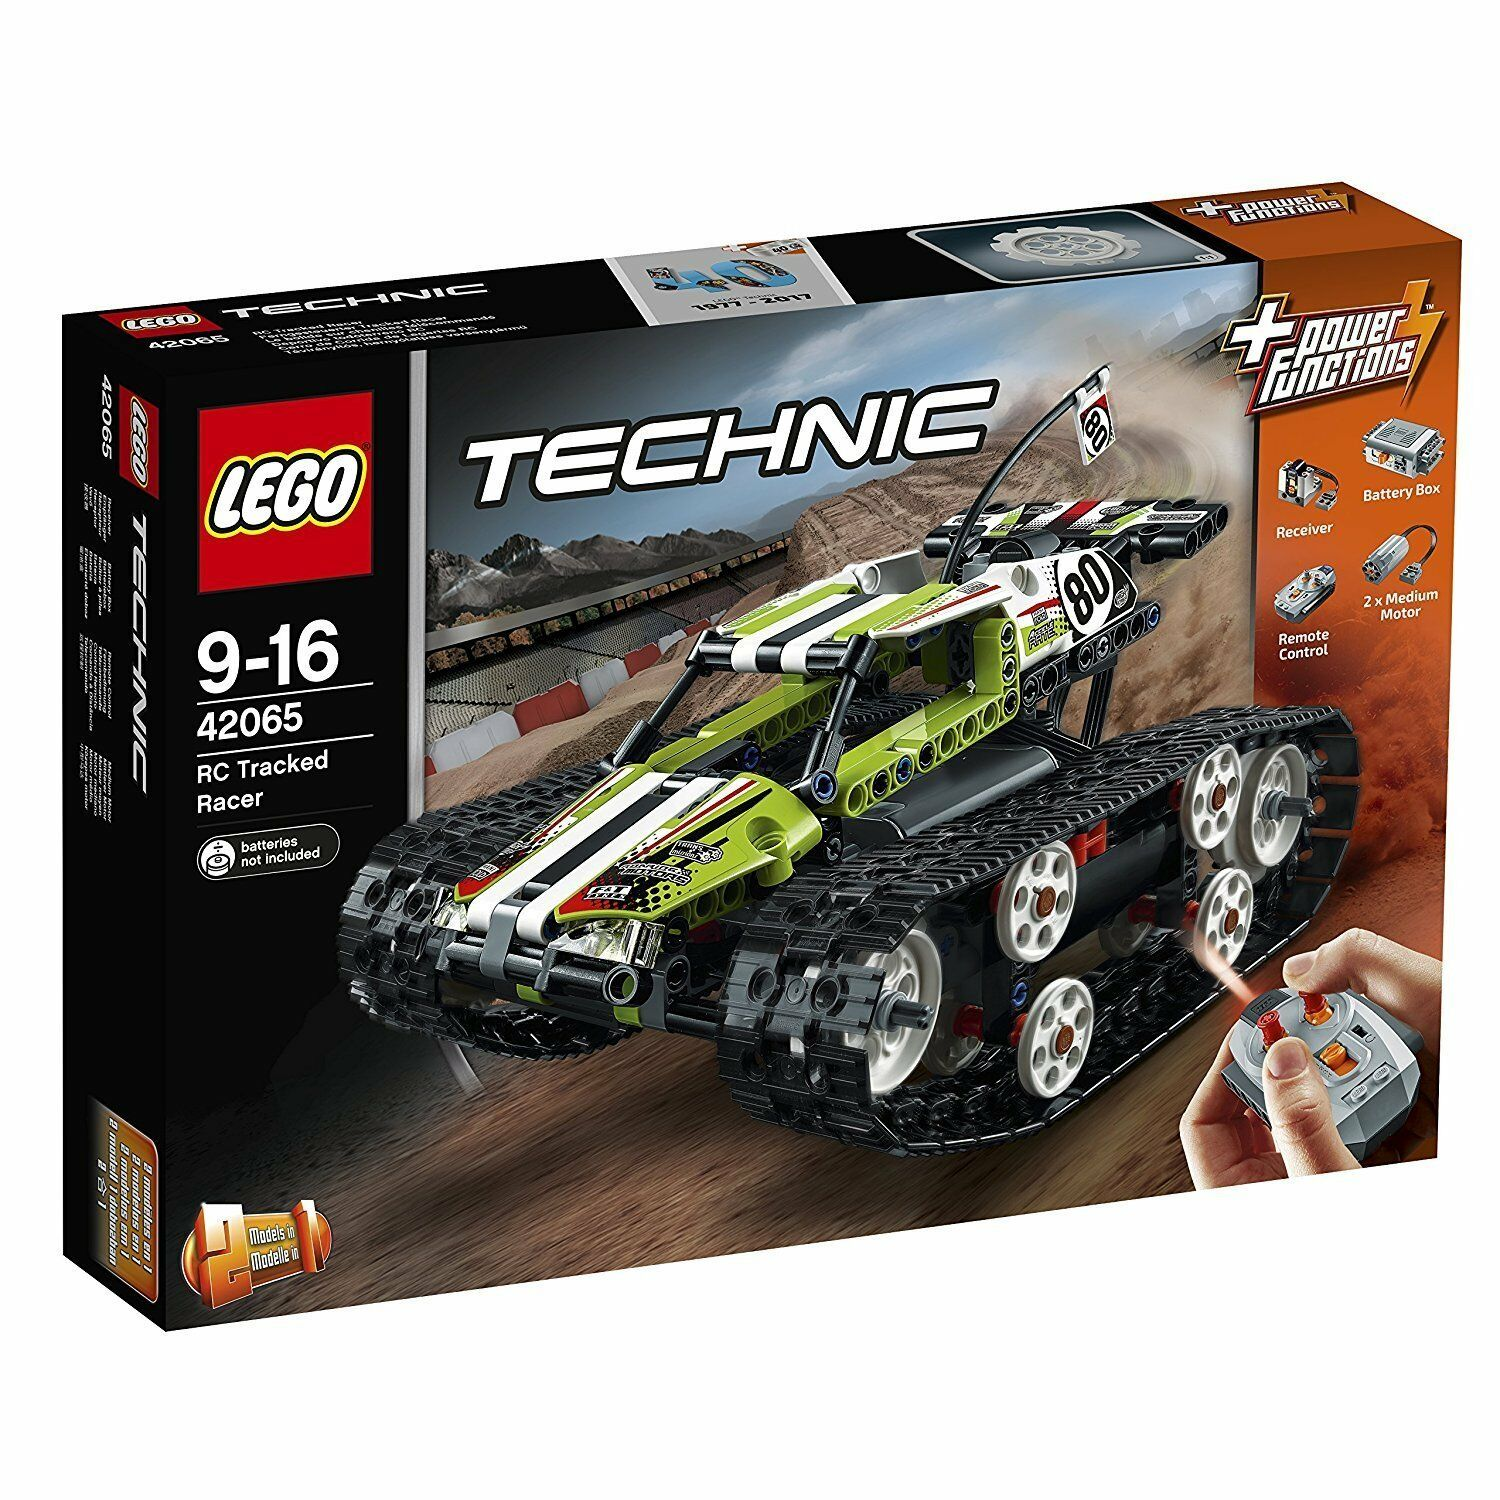 Lego Technic™ 42065 Télécommandé Mx Racer Neuf Emballage Emballage Emballage D'Origine Misb e317be